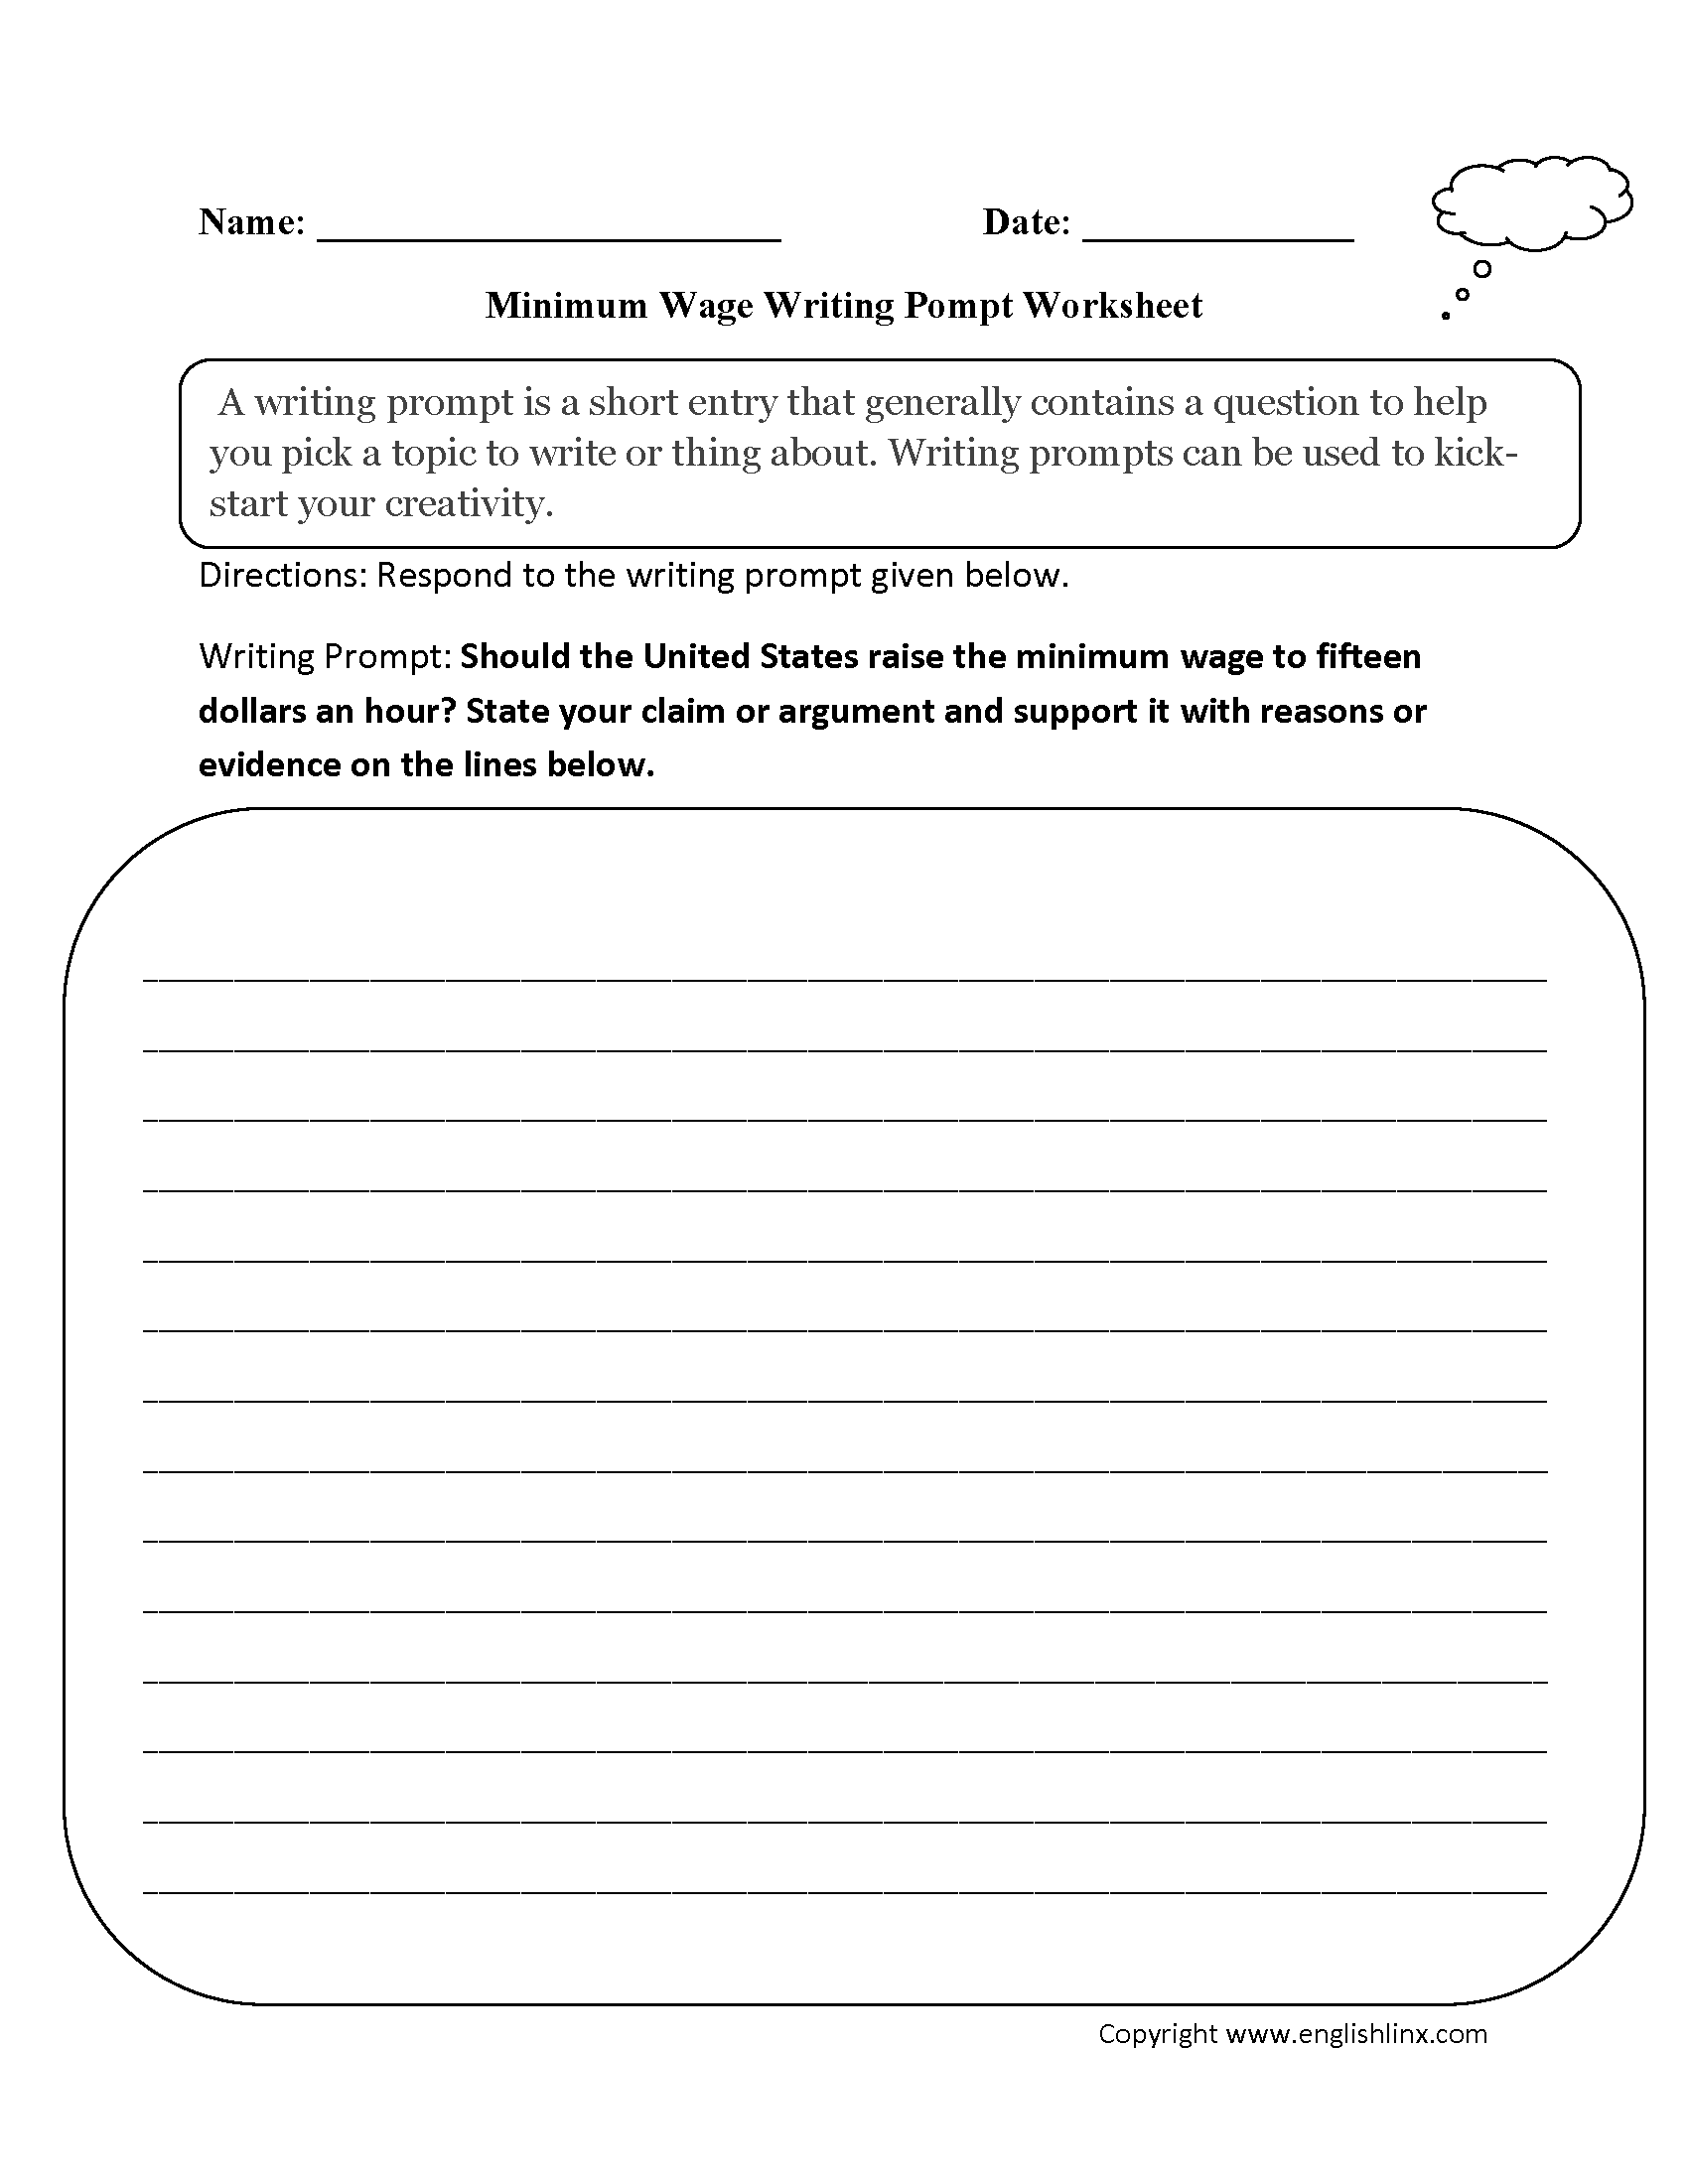 persuasive essay prewriting worksheet Lesson skill: the writing process for persuasive writing strand writing sol 67, 68 7 online sources copies of the attached persuasive writing prompt worksheet and checklist dictionaries thesauruses sticky notes lesson module 1 have finished for this persuasive essay.